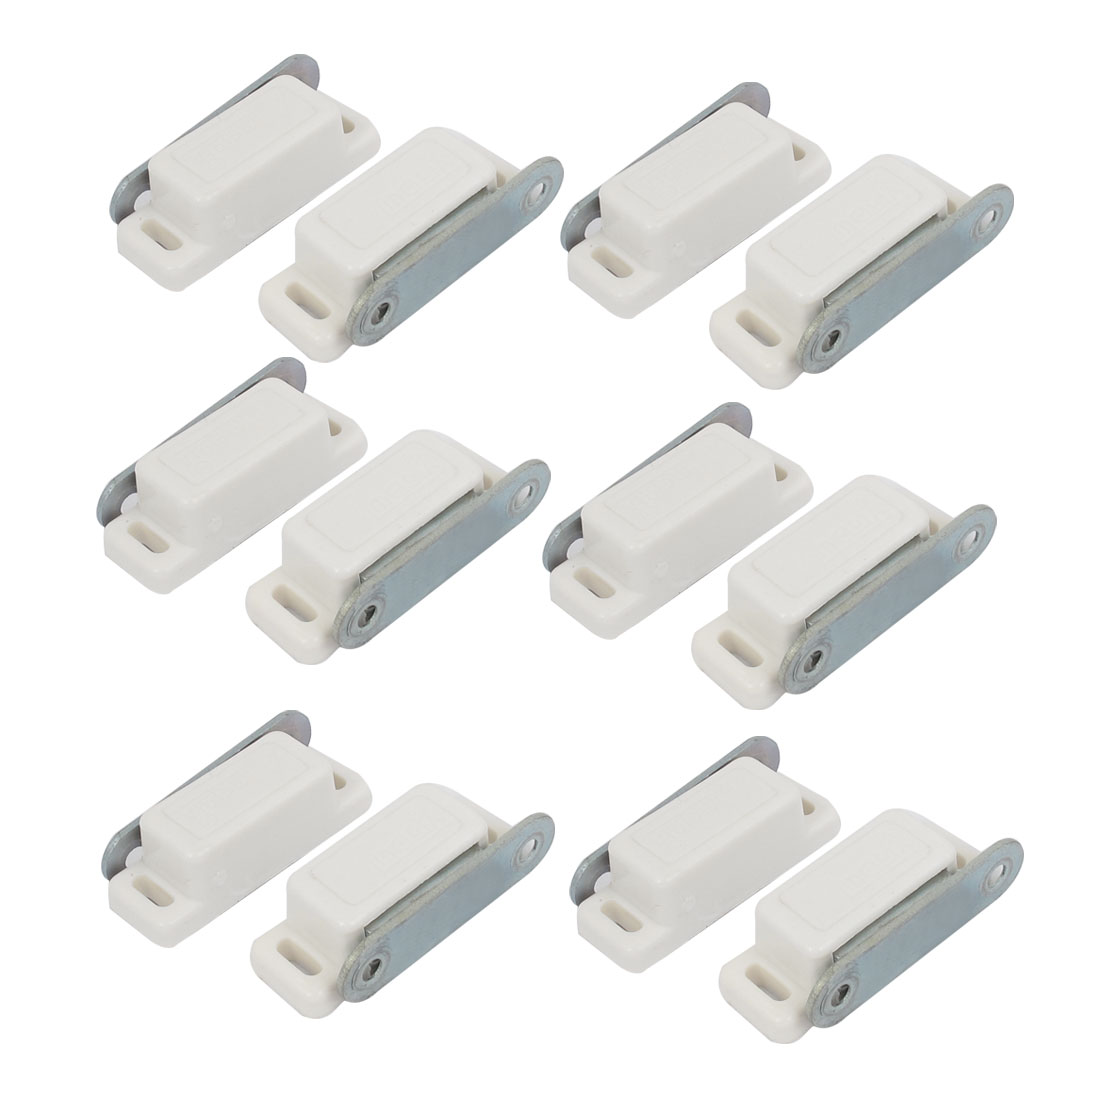 Door Cabinet Cupboard Furniture White Plastic Shell Magnetic Catch Latch 12pcs